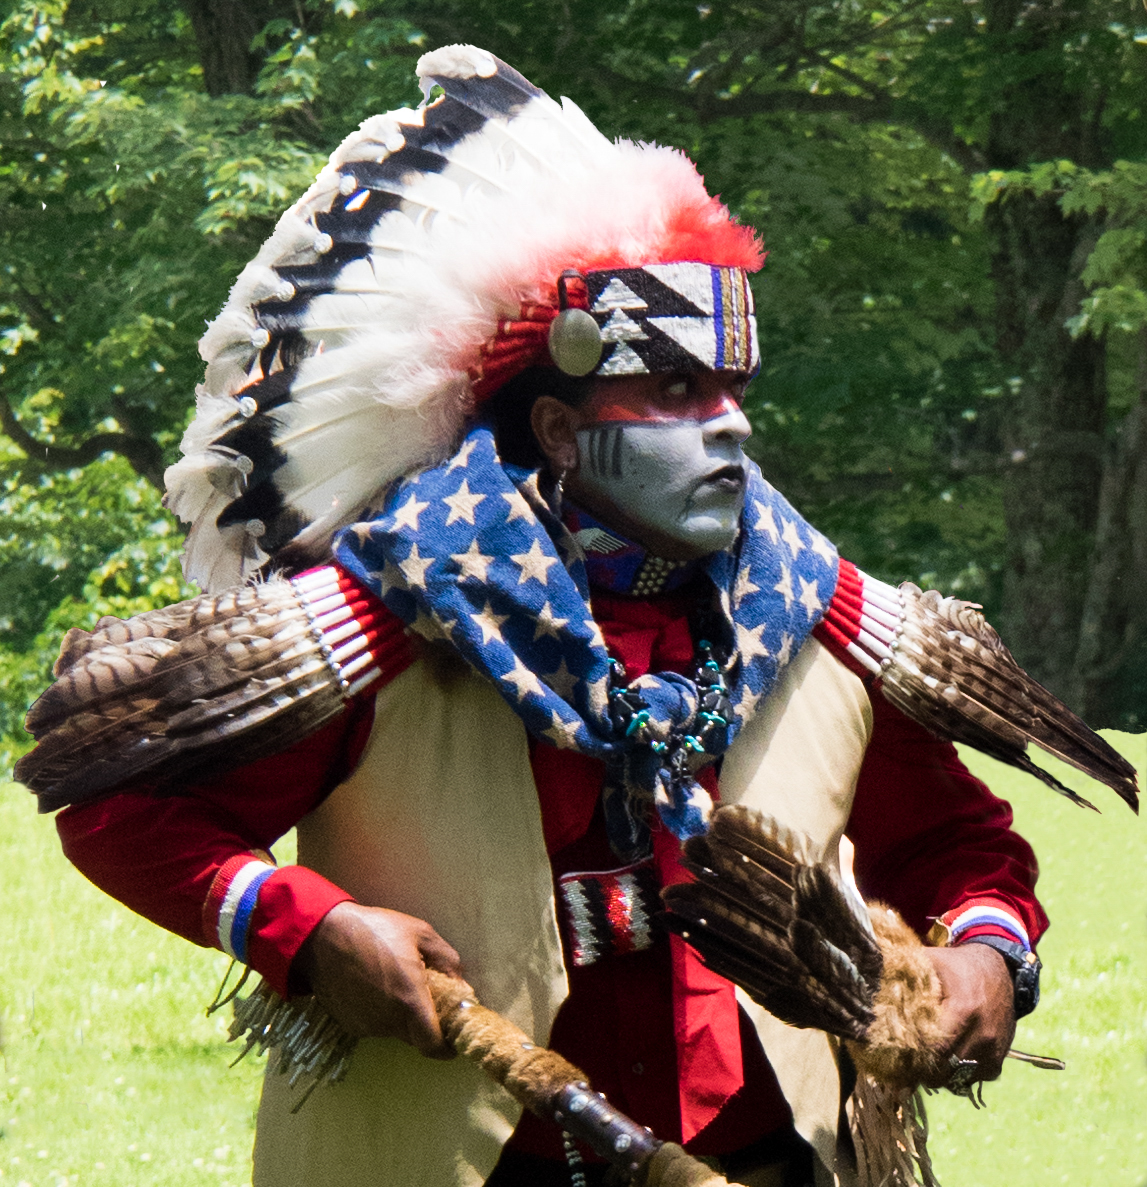 25th Annual Fort Ancient Celebration: A Gathering of Four Directions